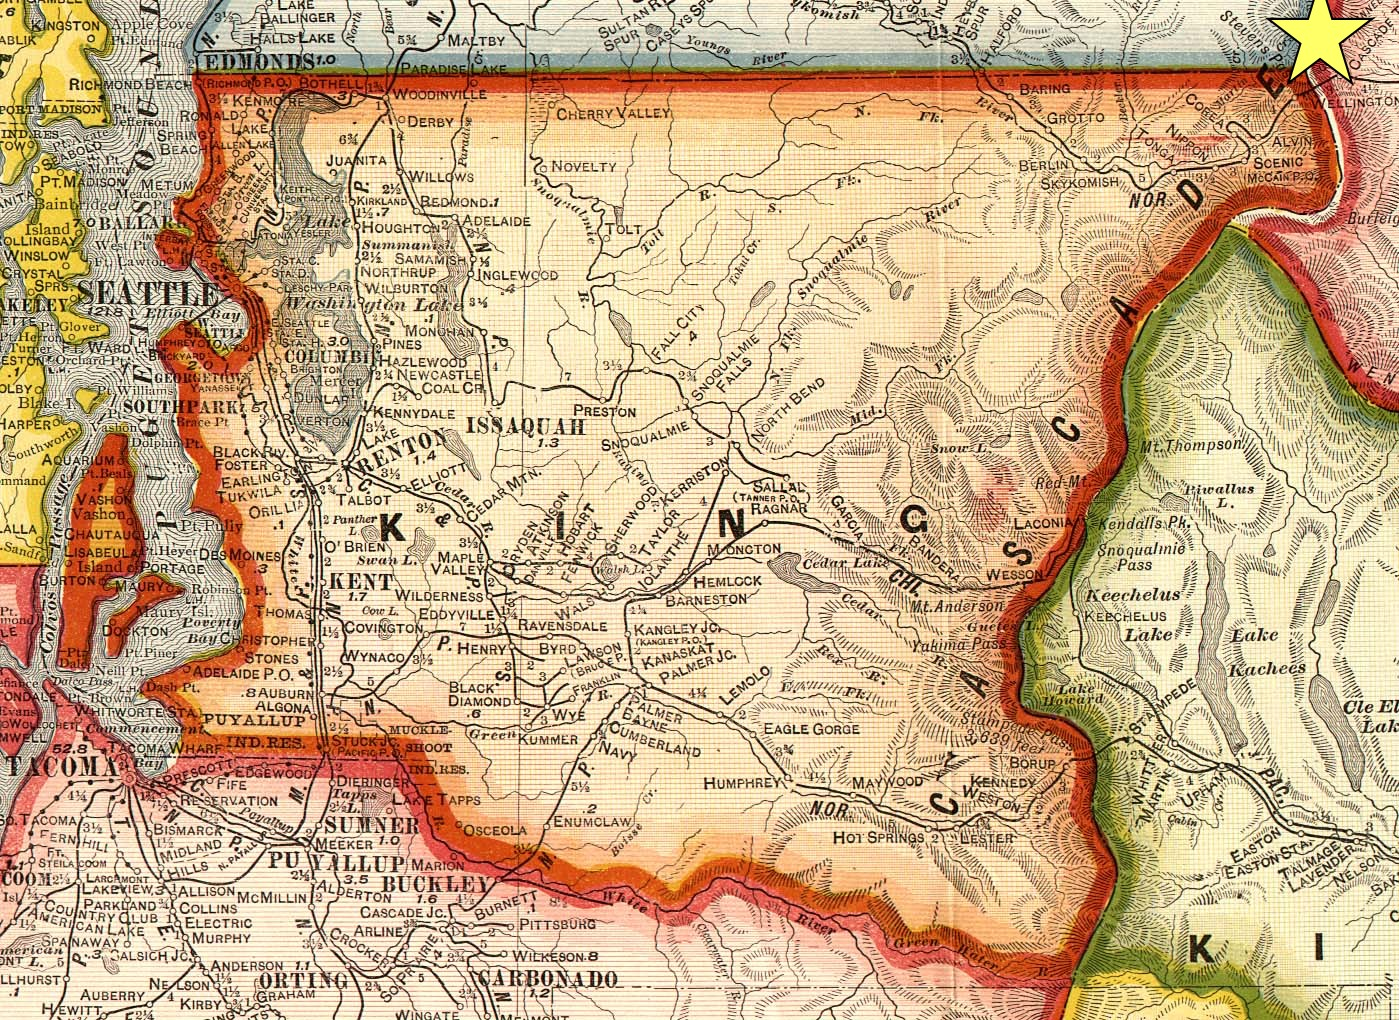 King County, 1909, from U.S. GenWeb Project. Wellington is in the extreme northeast corner.